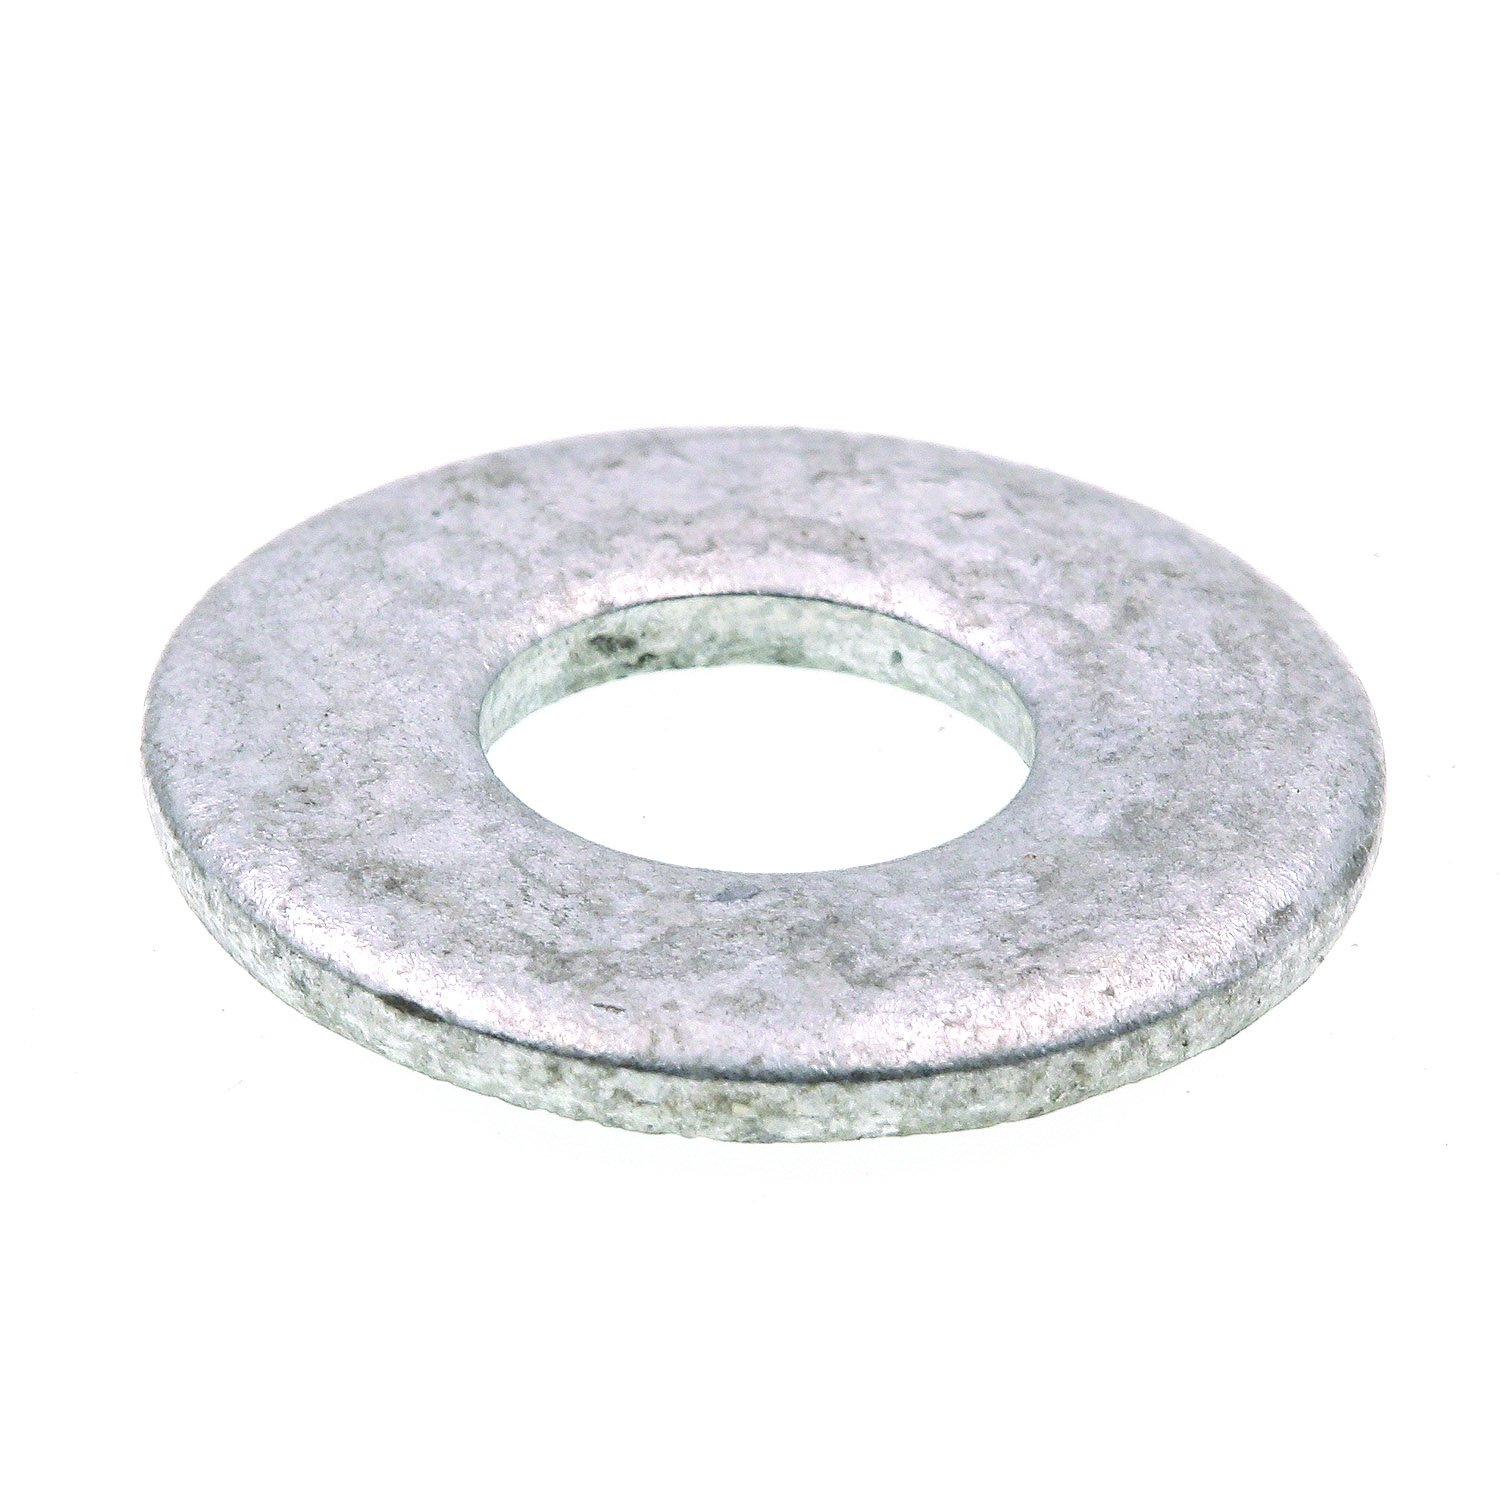 Prime Line 9080082 Flat Washers USS 3 8 in. X 1 in. OD Hot Dip Galvanized Steel 50 Pack